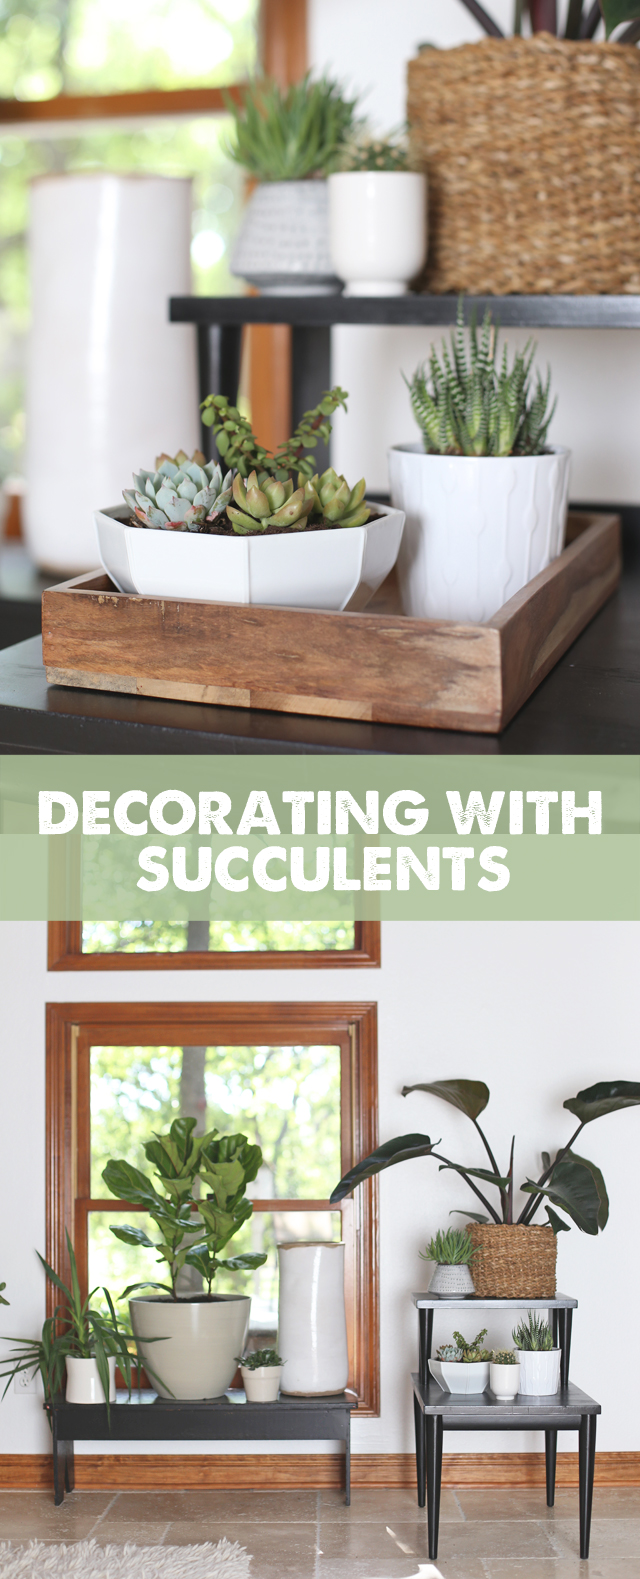 Decorating With Succulents: Three trends to try along with product recommendations to get the look